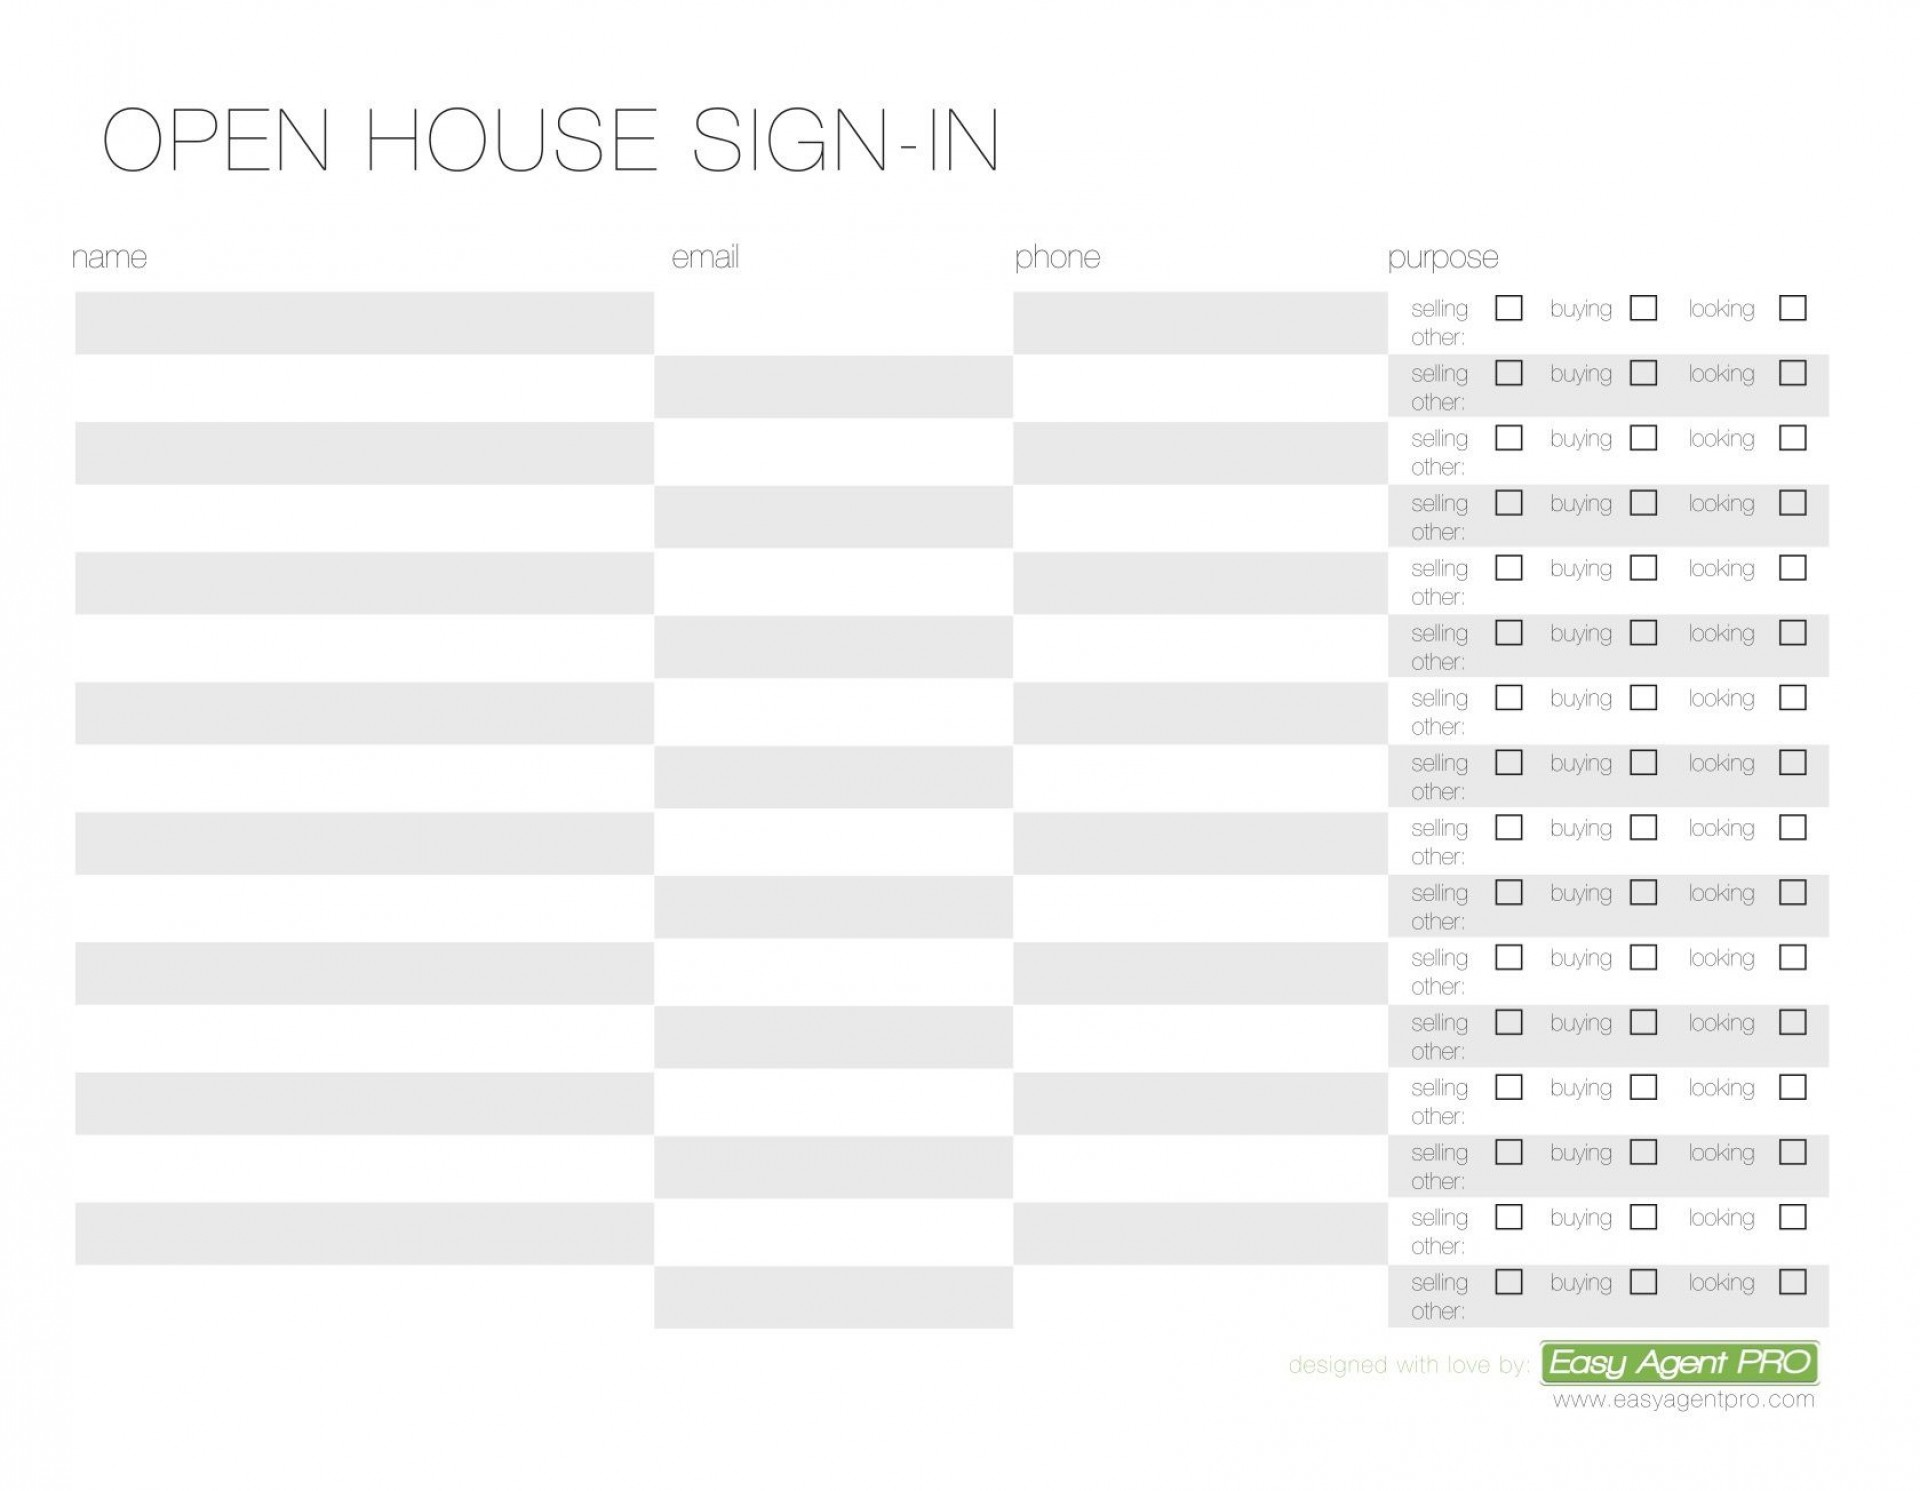 005 Beautiful Pdf Sign In Sheet Template Design  Up1920